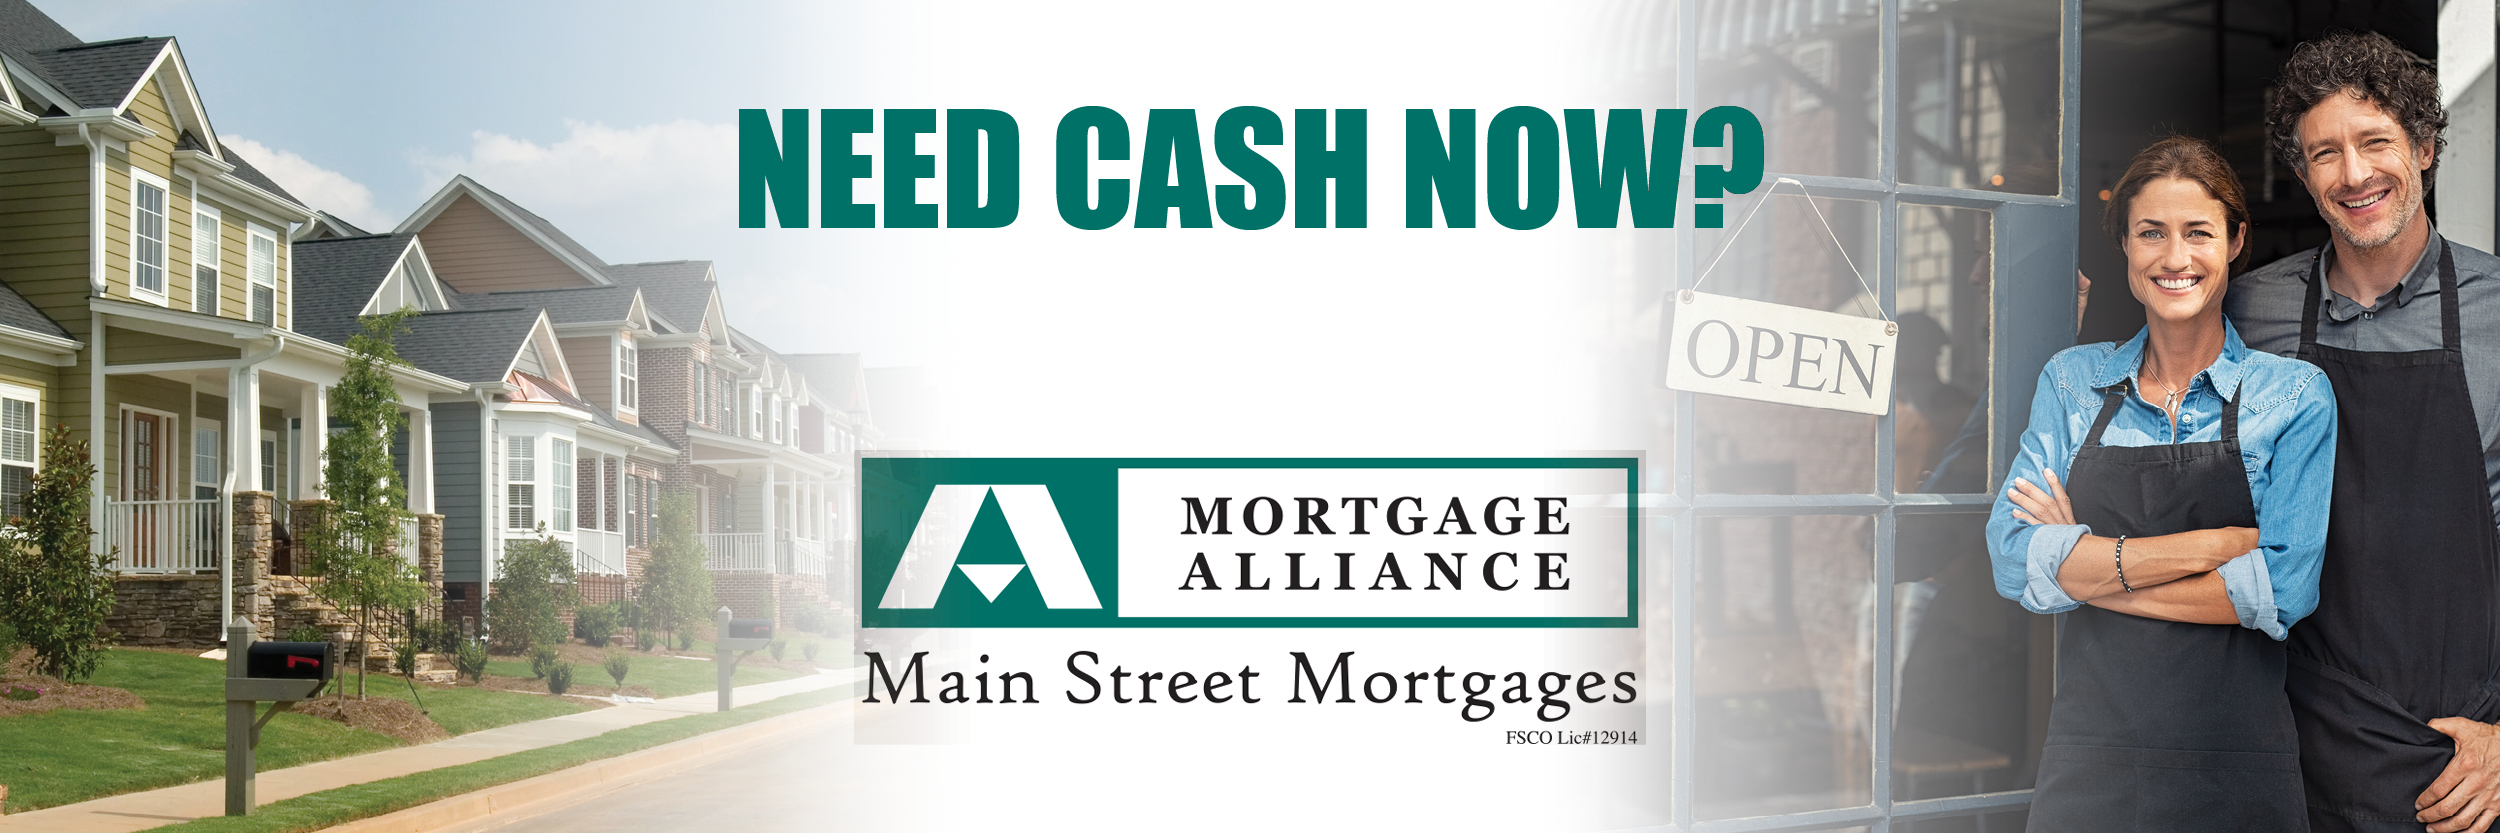 Main Street Mortgages Get Cash Now